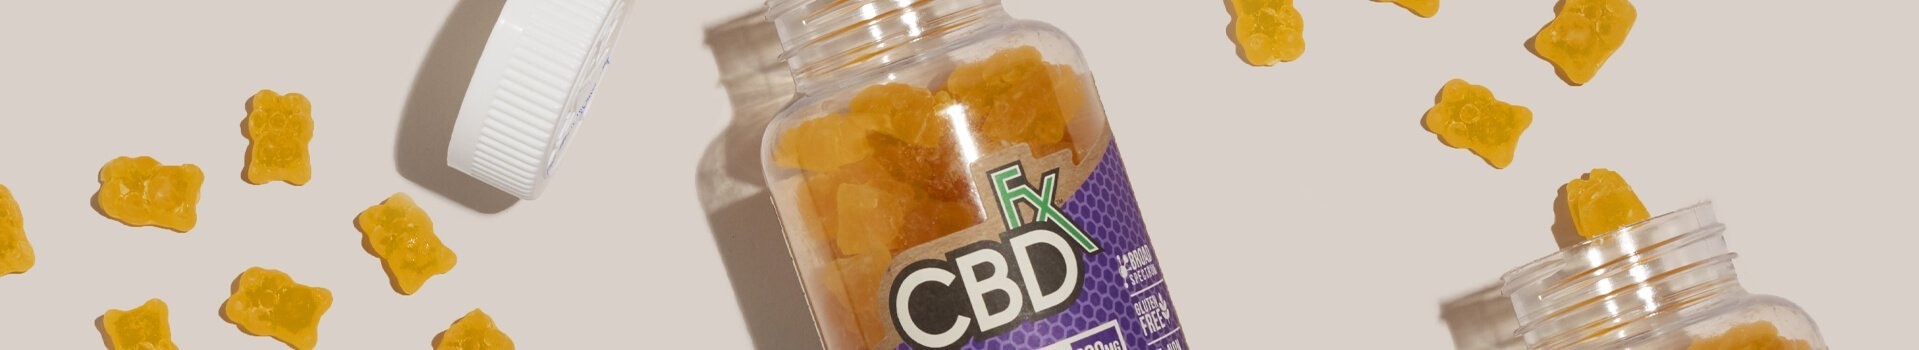 Organic CBDfx Gummies Come in 3 Delicious Flavors